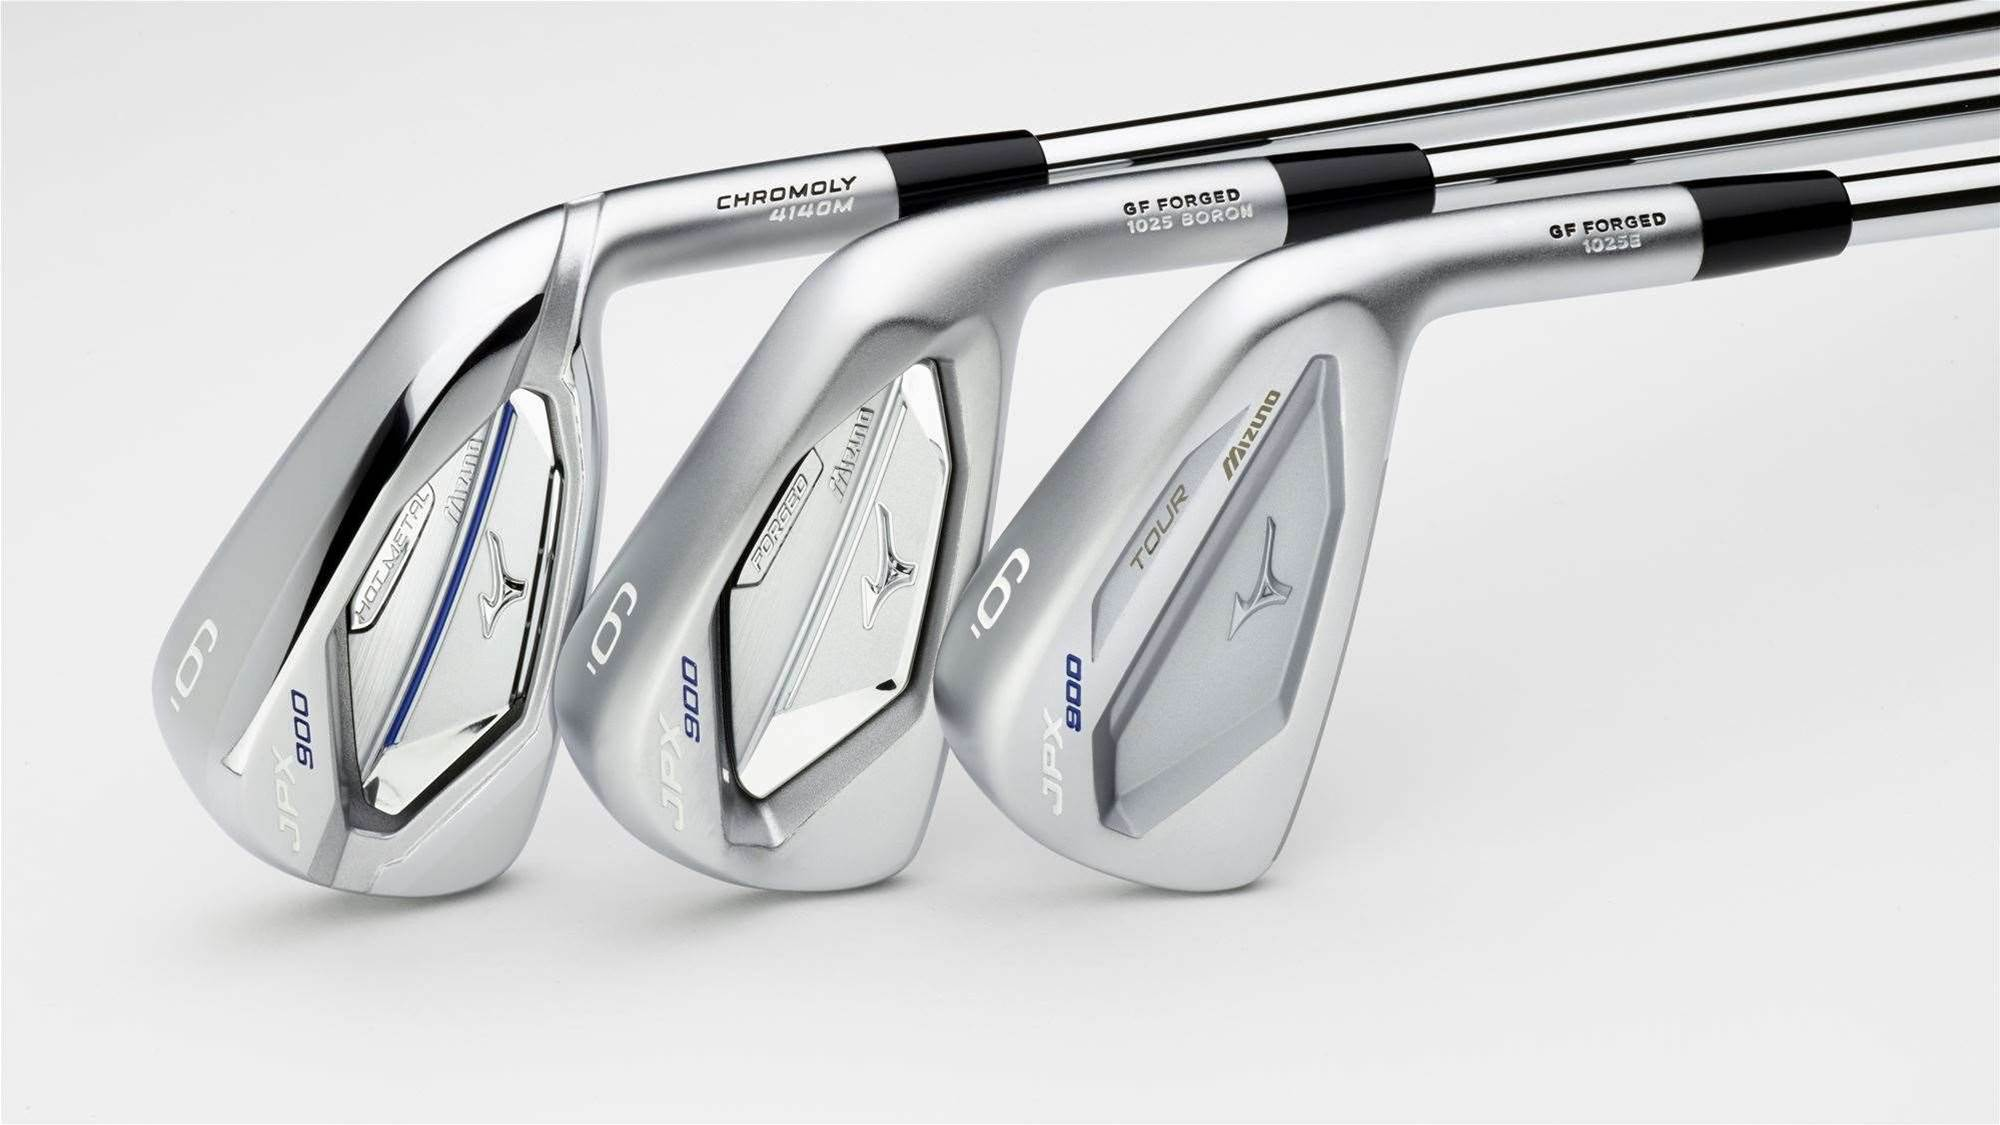 New Gear: Mizuno launches three JPX900 iron models